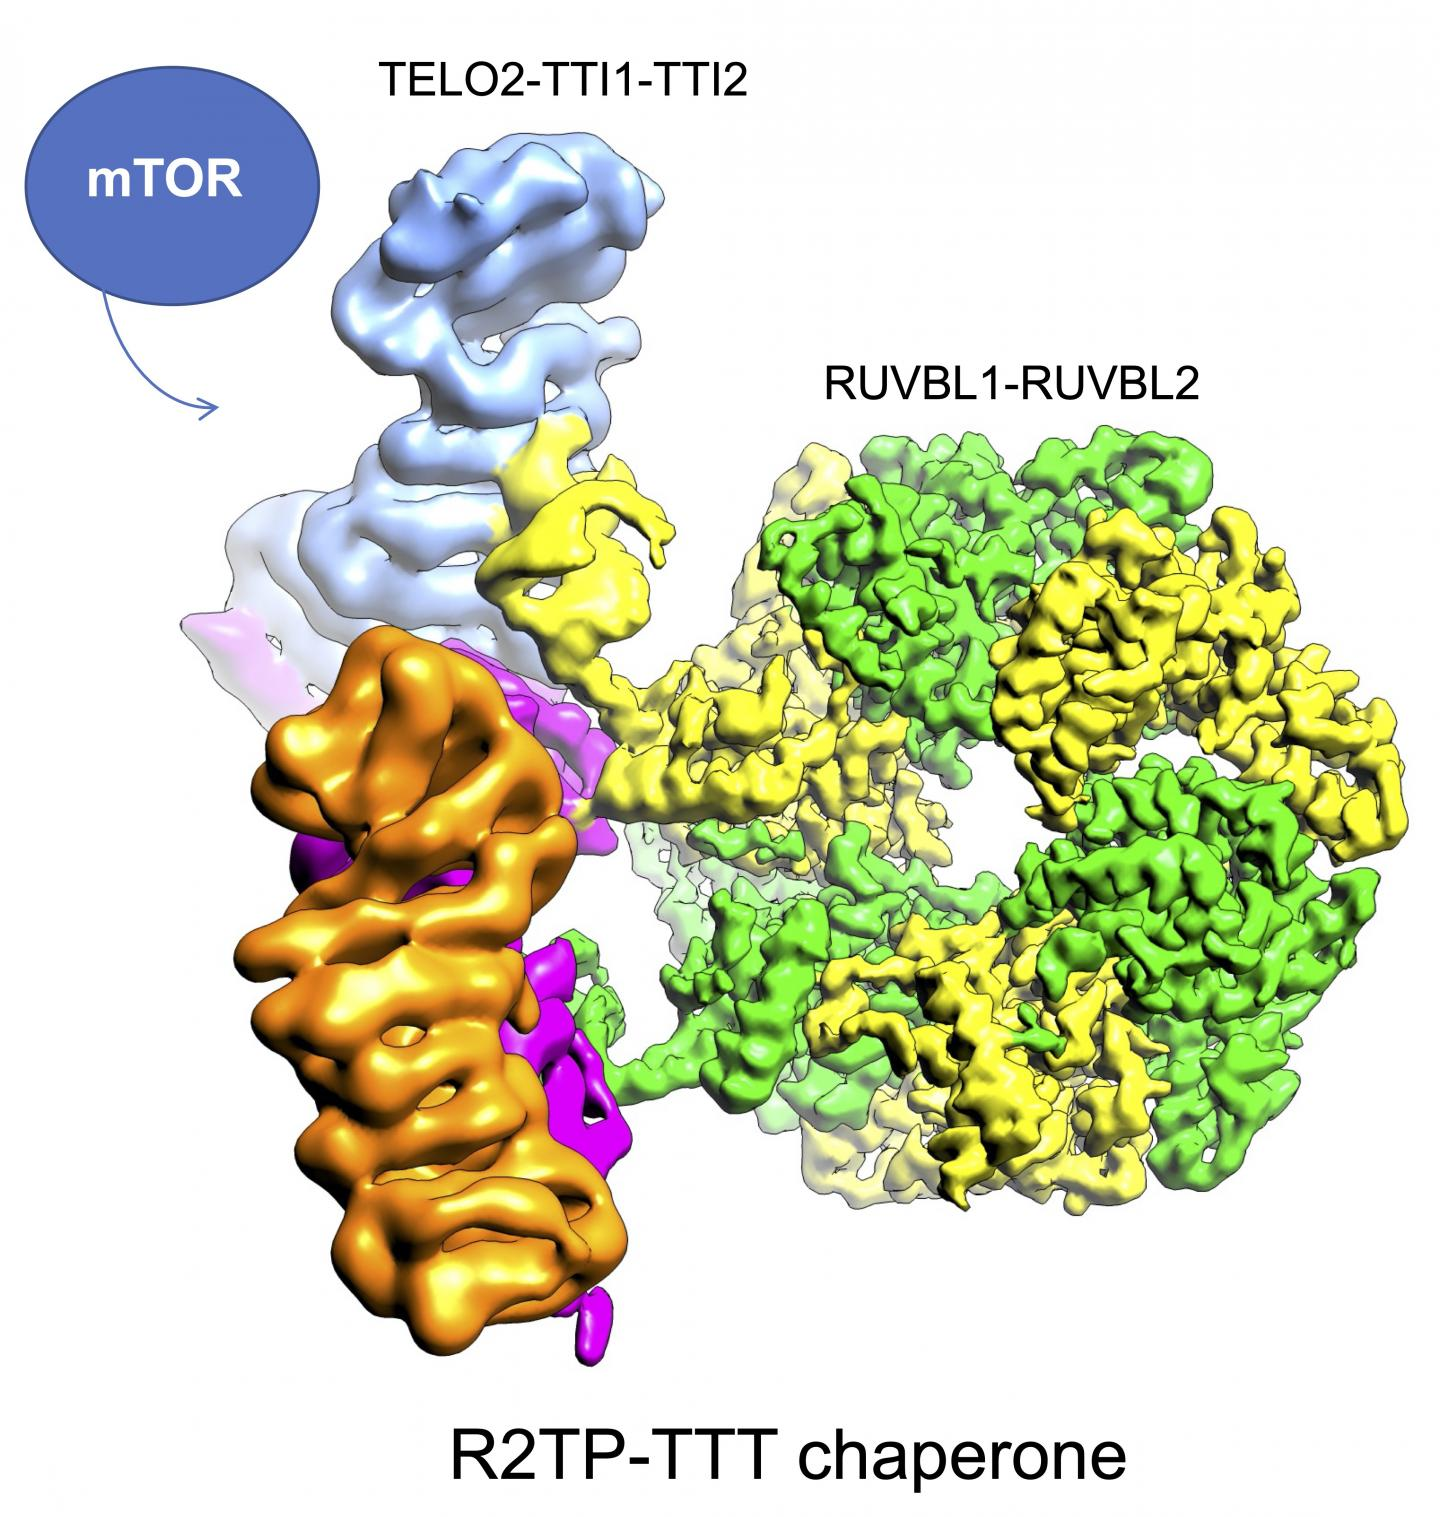 Structure of TELO2-TTI1-TTI2 proteins (article), together with the rest of proteins that manages the assembly of mTOR